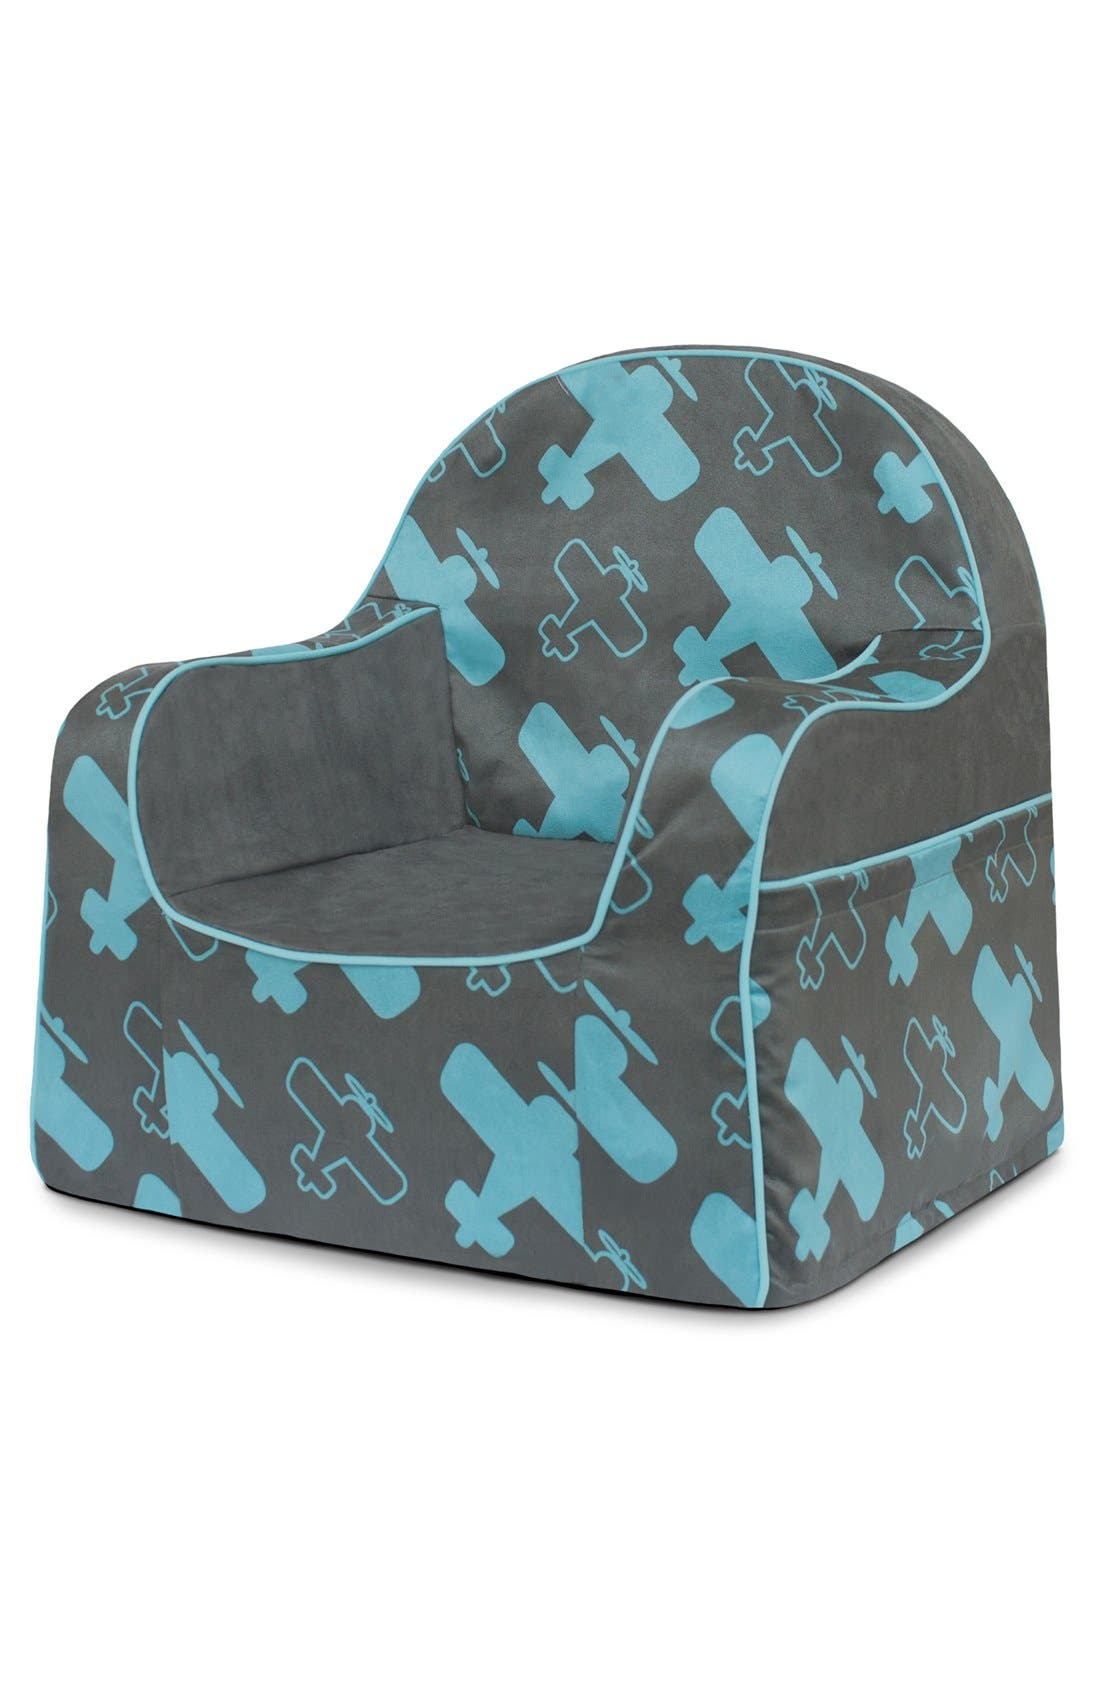 'Personalized Little Reader' Chair,                             Alternate thumbnail 3, color,                             Planes